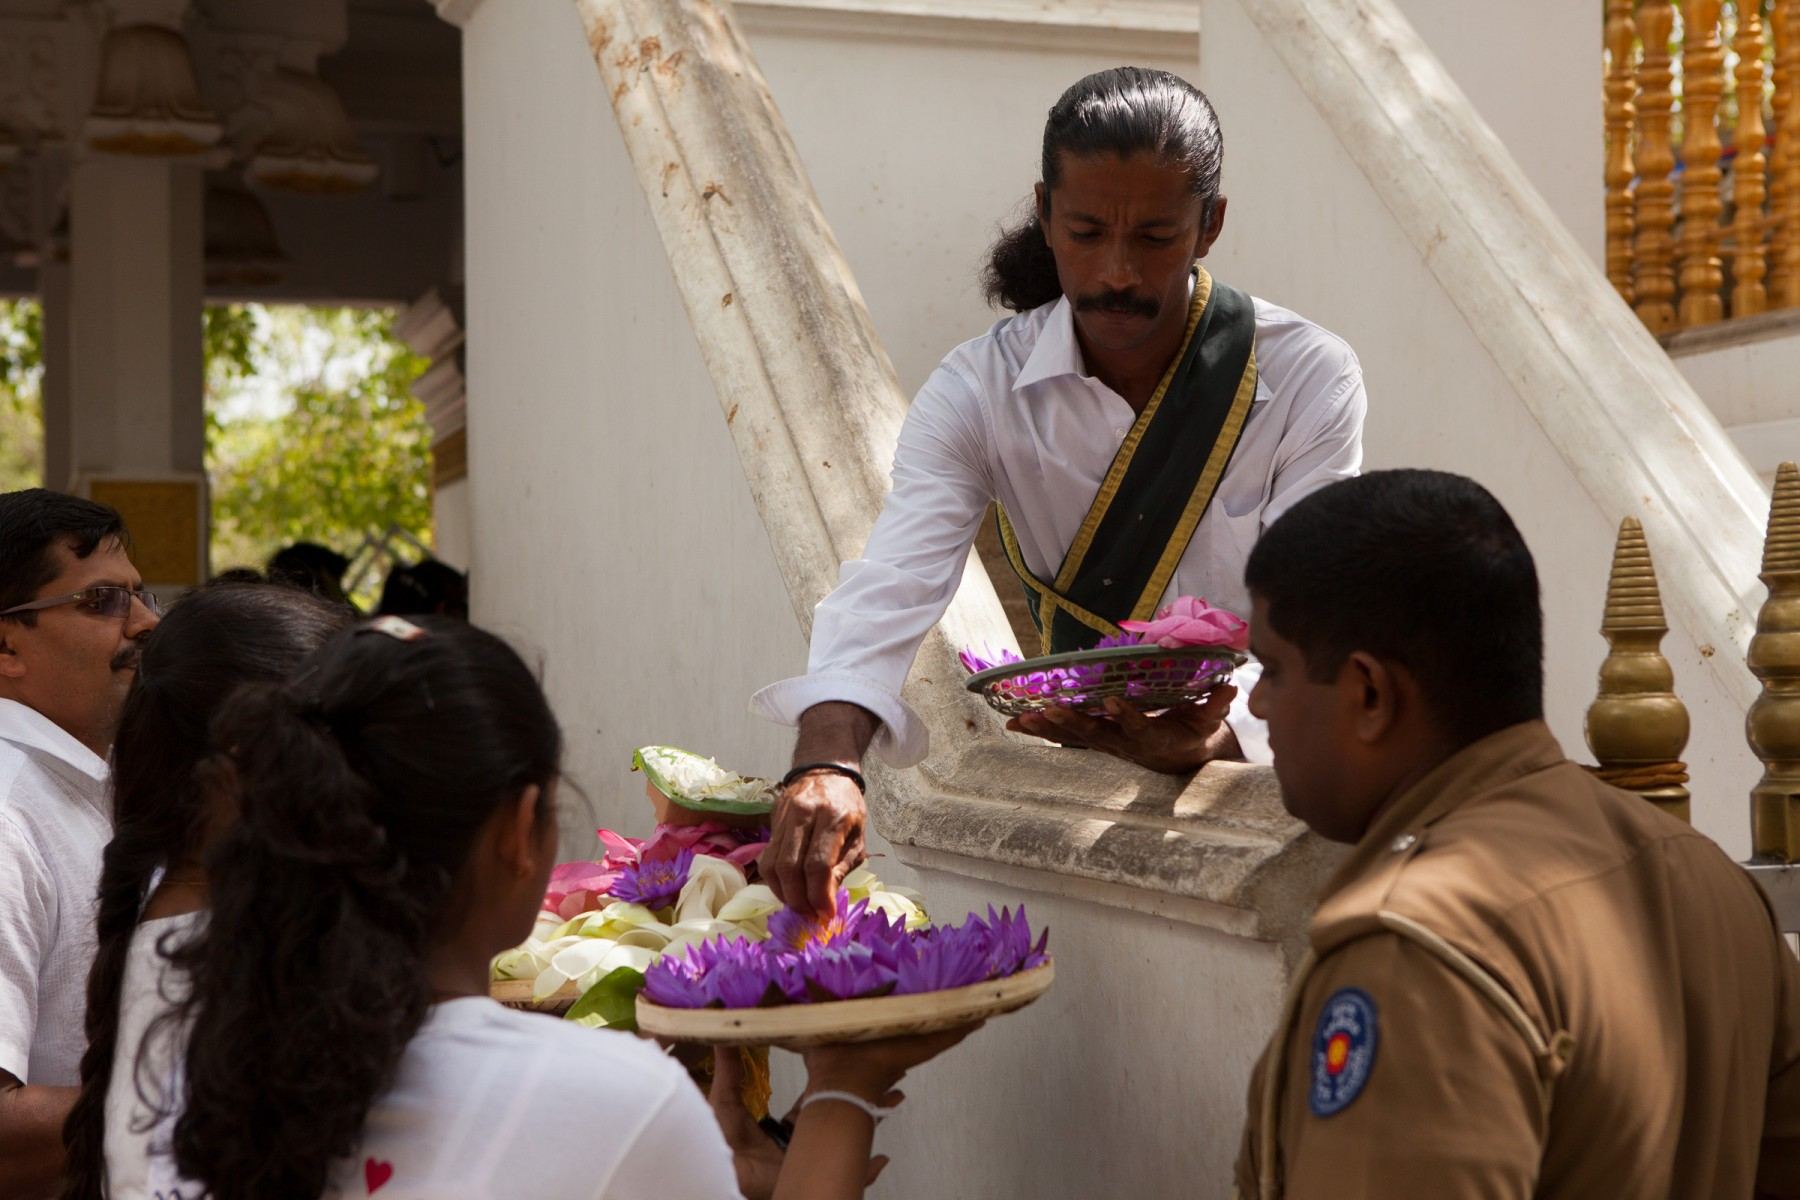 Offerings being made to an attendant at the Jaya Sri Maha Bodhi.  The tree at the temple is said to have been grown from a cutting of the Bodhi tree under which Budda achieved enlightenment. It was brought to Sri Lanka by the Theri Sangamitta, daughter of Emperor Asoka in 249 BC making it possibly the oldest tree planted by humans.